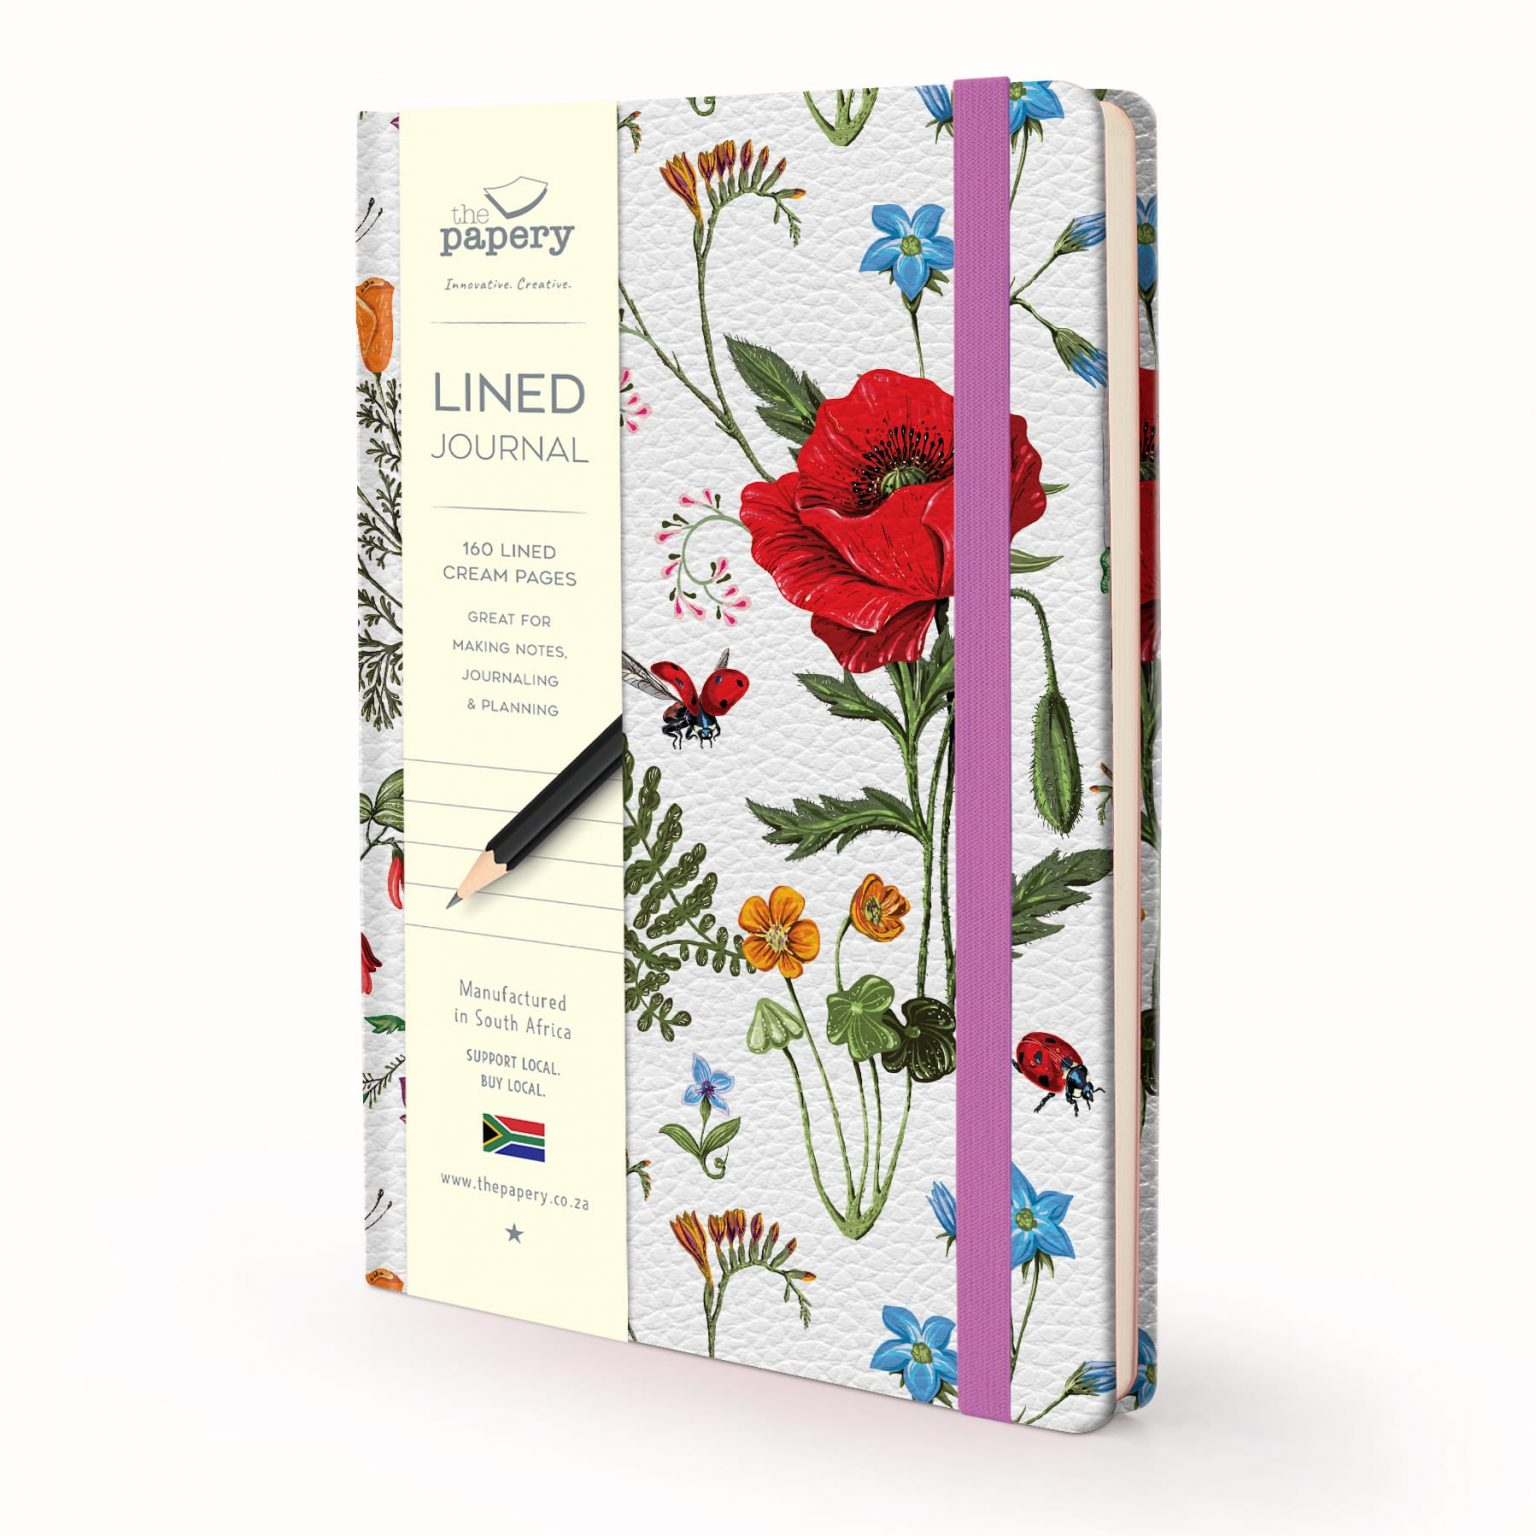 Image shows a Designer Floral - Flowers 'n Bugs Lined Journal